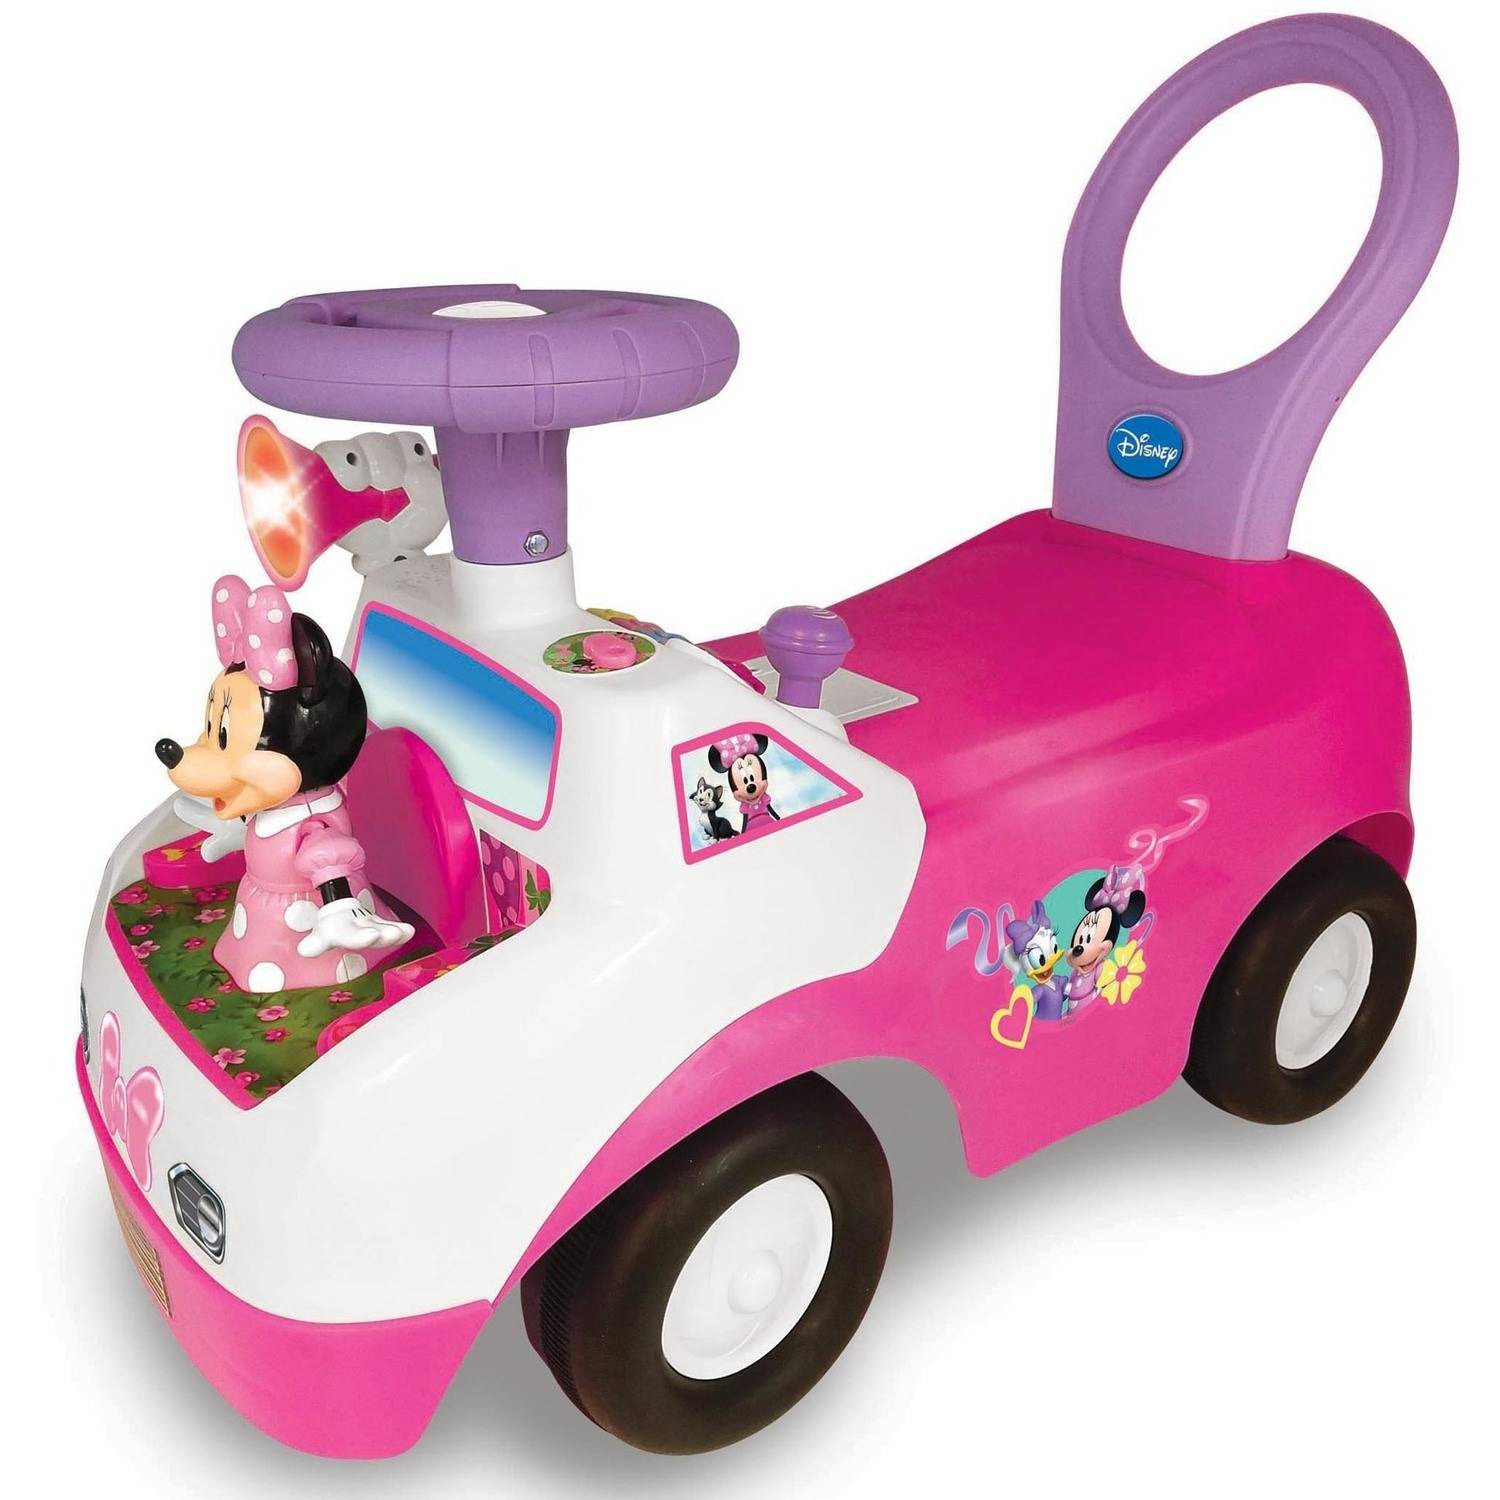 Kiddieland Disney Minnie Mouse Dancing Light and Sound Activity Ride-On by Kiddieland